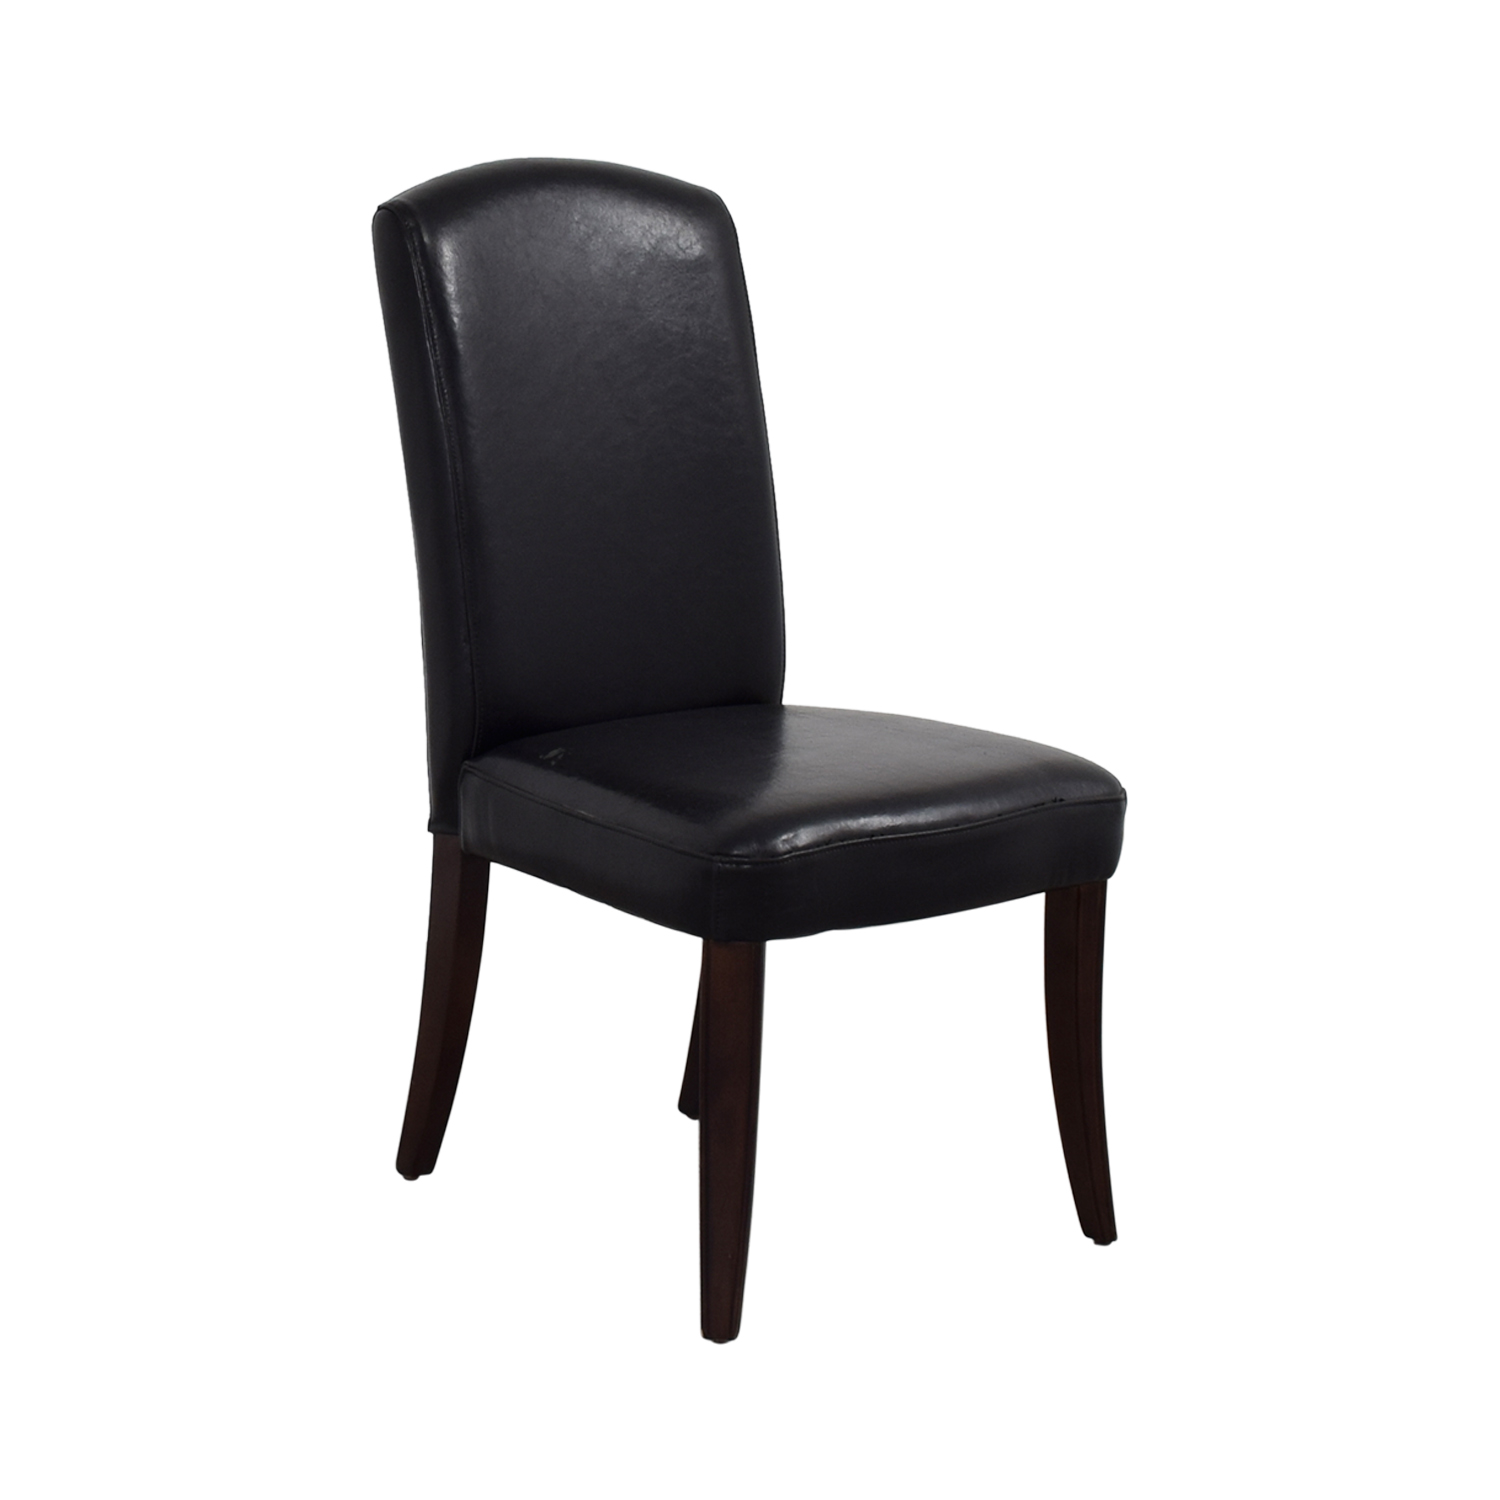 Black Leatherette Chair with Padded Seat nj